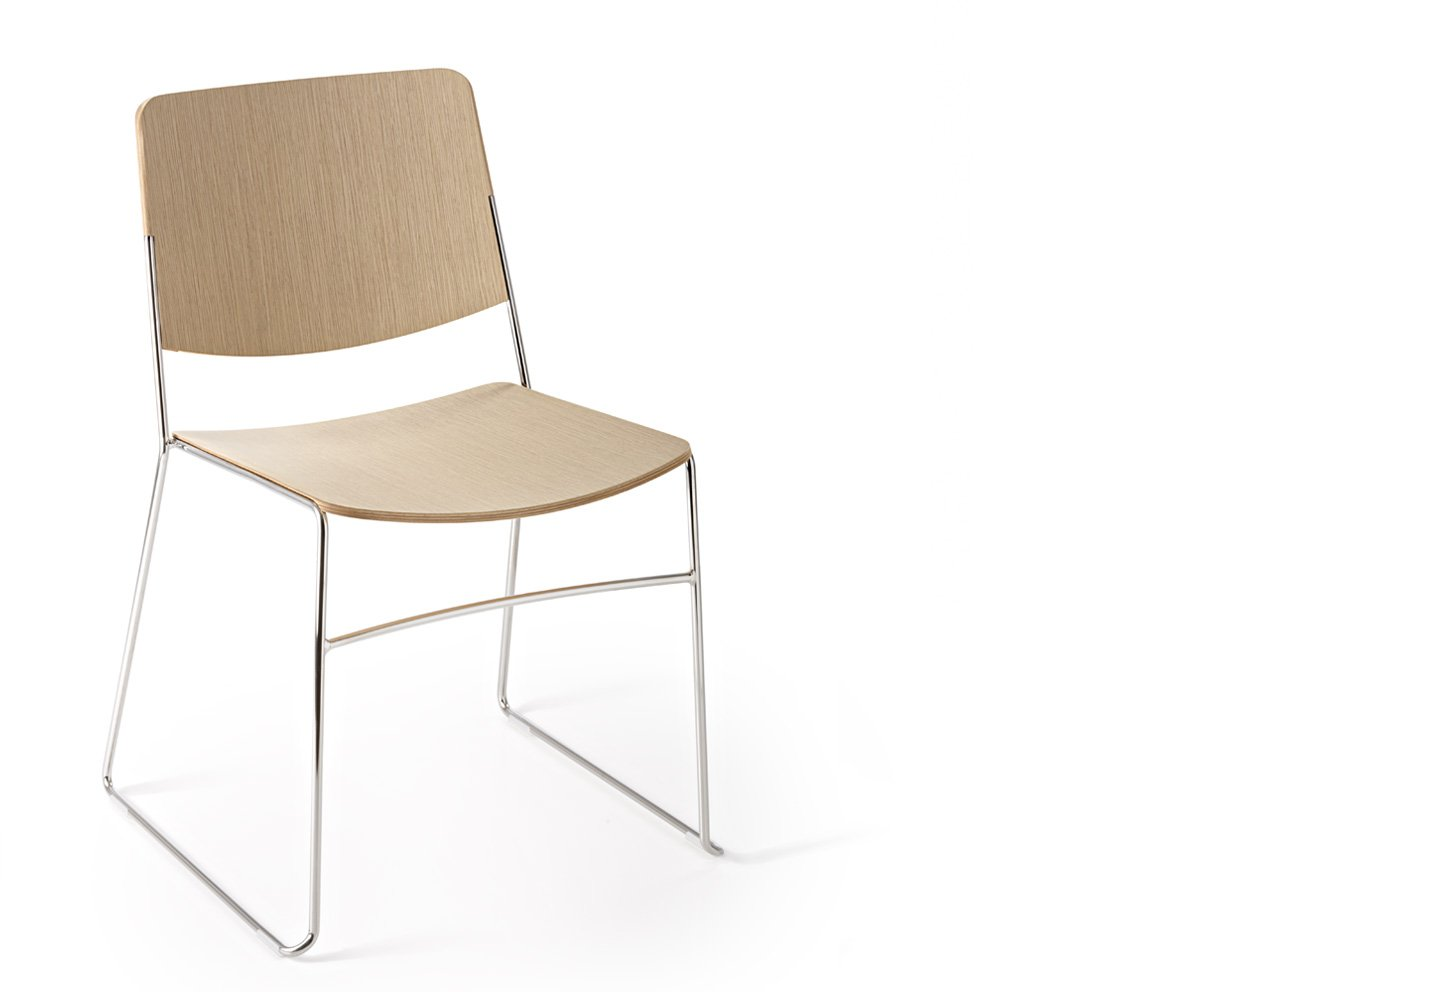 Link Chair from Fornasarig, designed by Luca Fornasarig